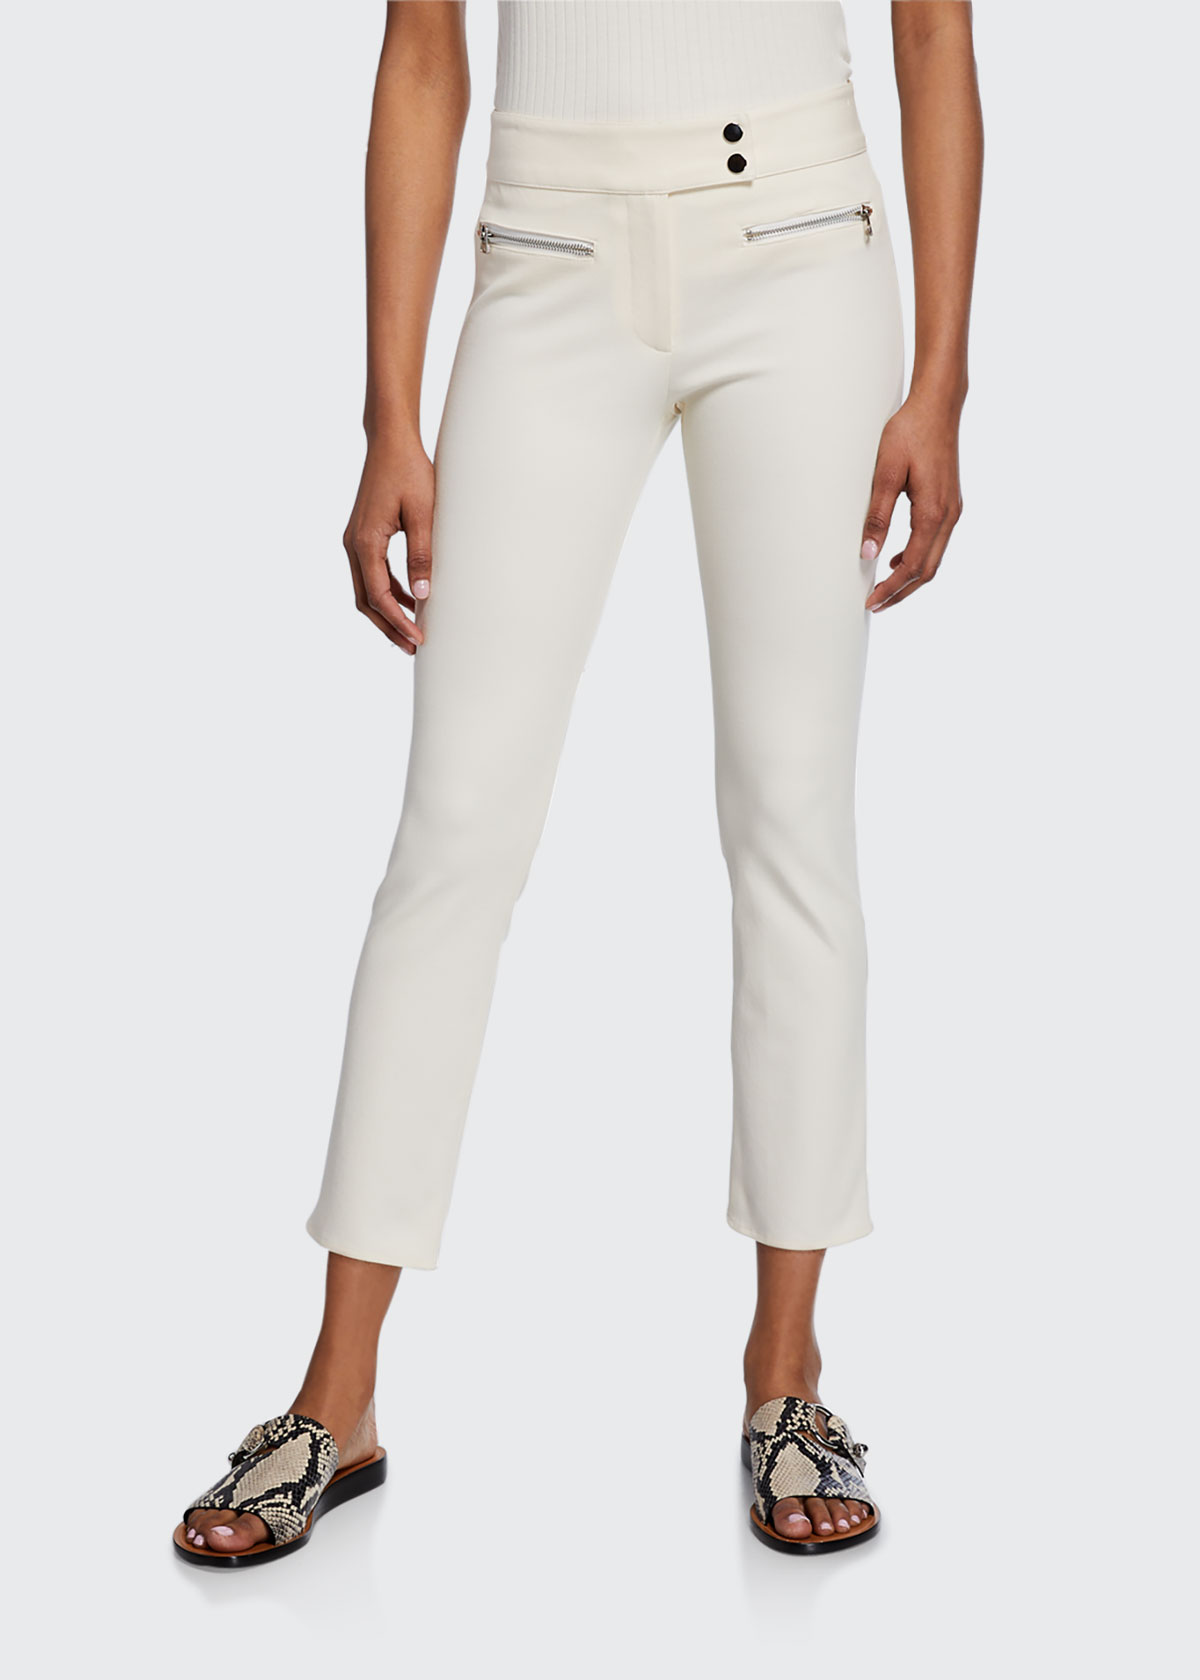 Metro Cropped Kick Flare Pants, Black in White